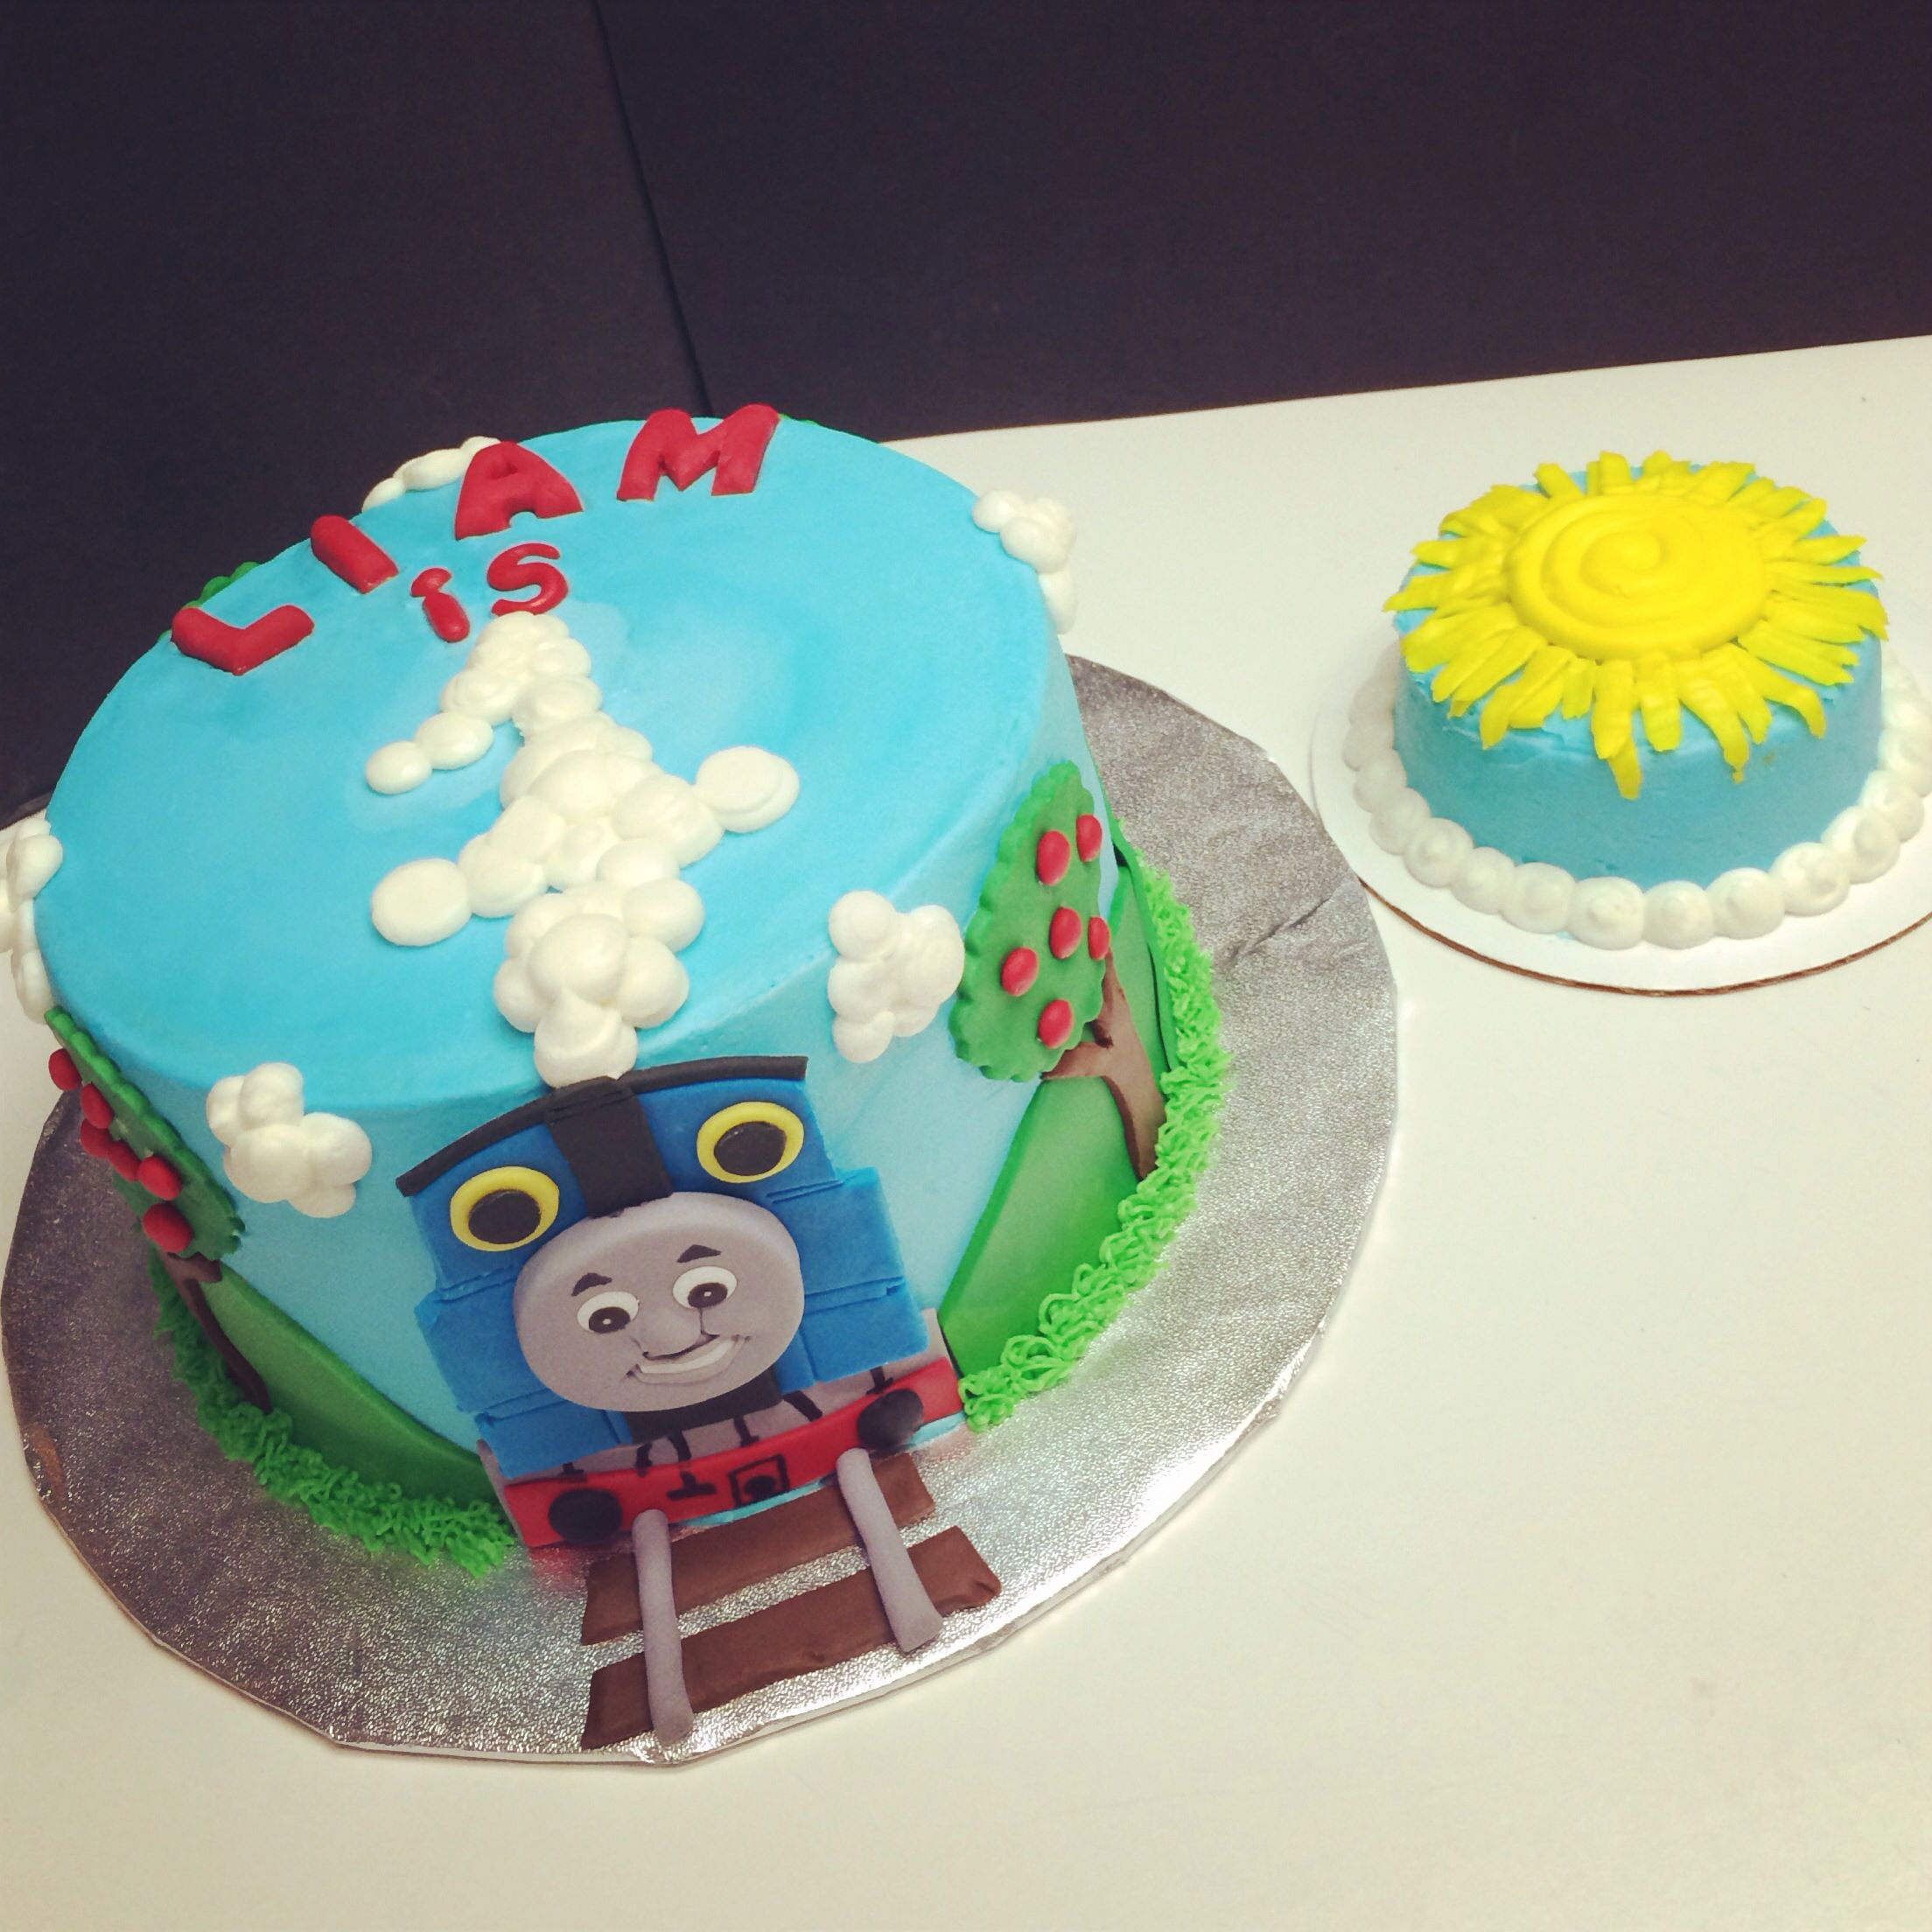 Thomas The Train Cake With Smash Cake